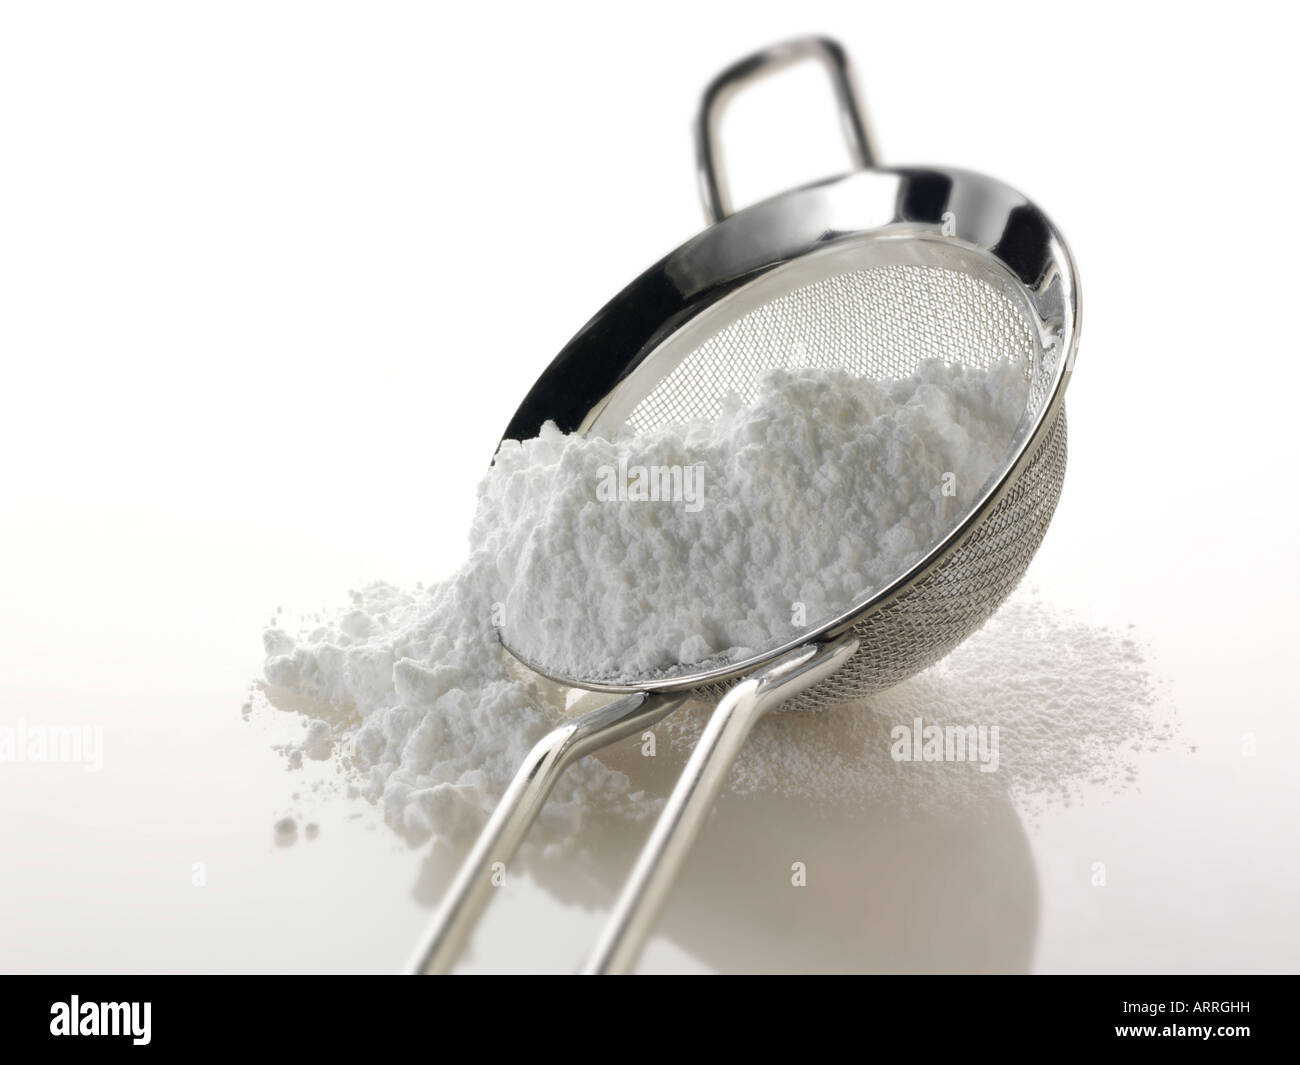 Icing sugar on a sieve against a white background - Stock Image